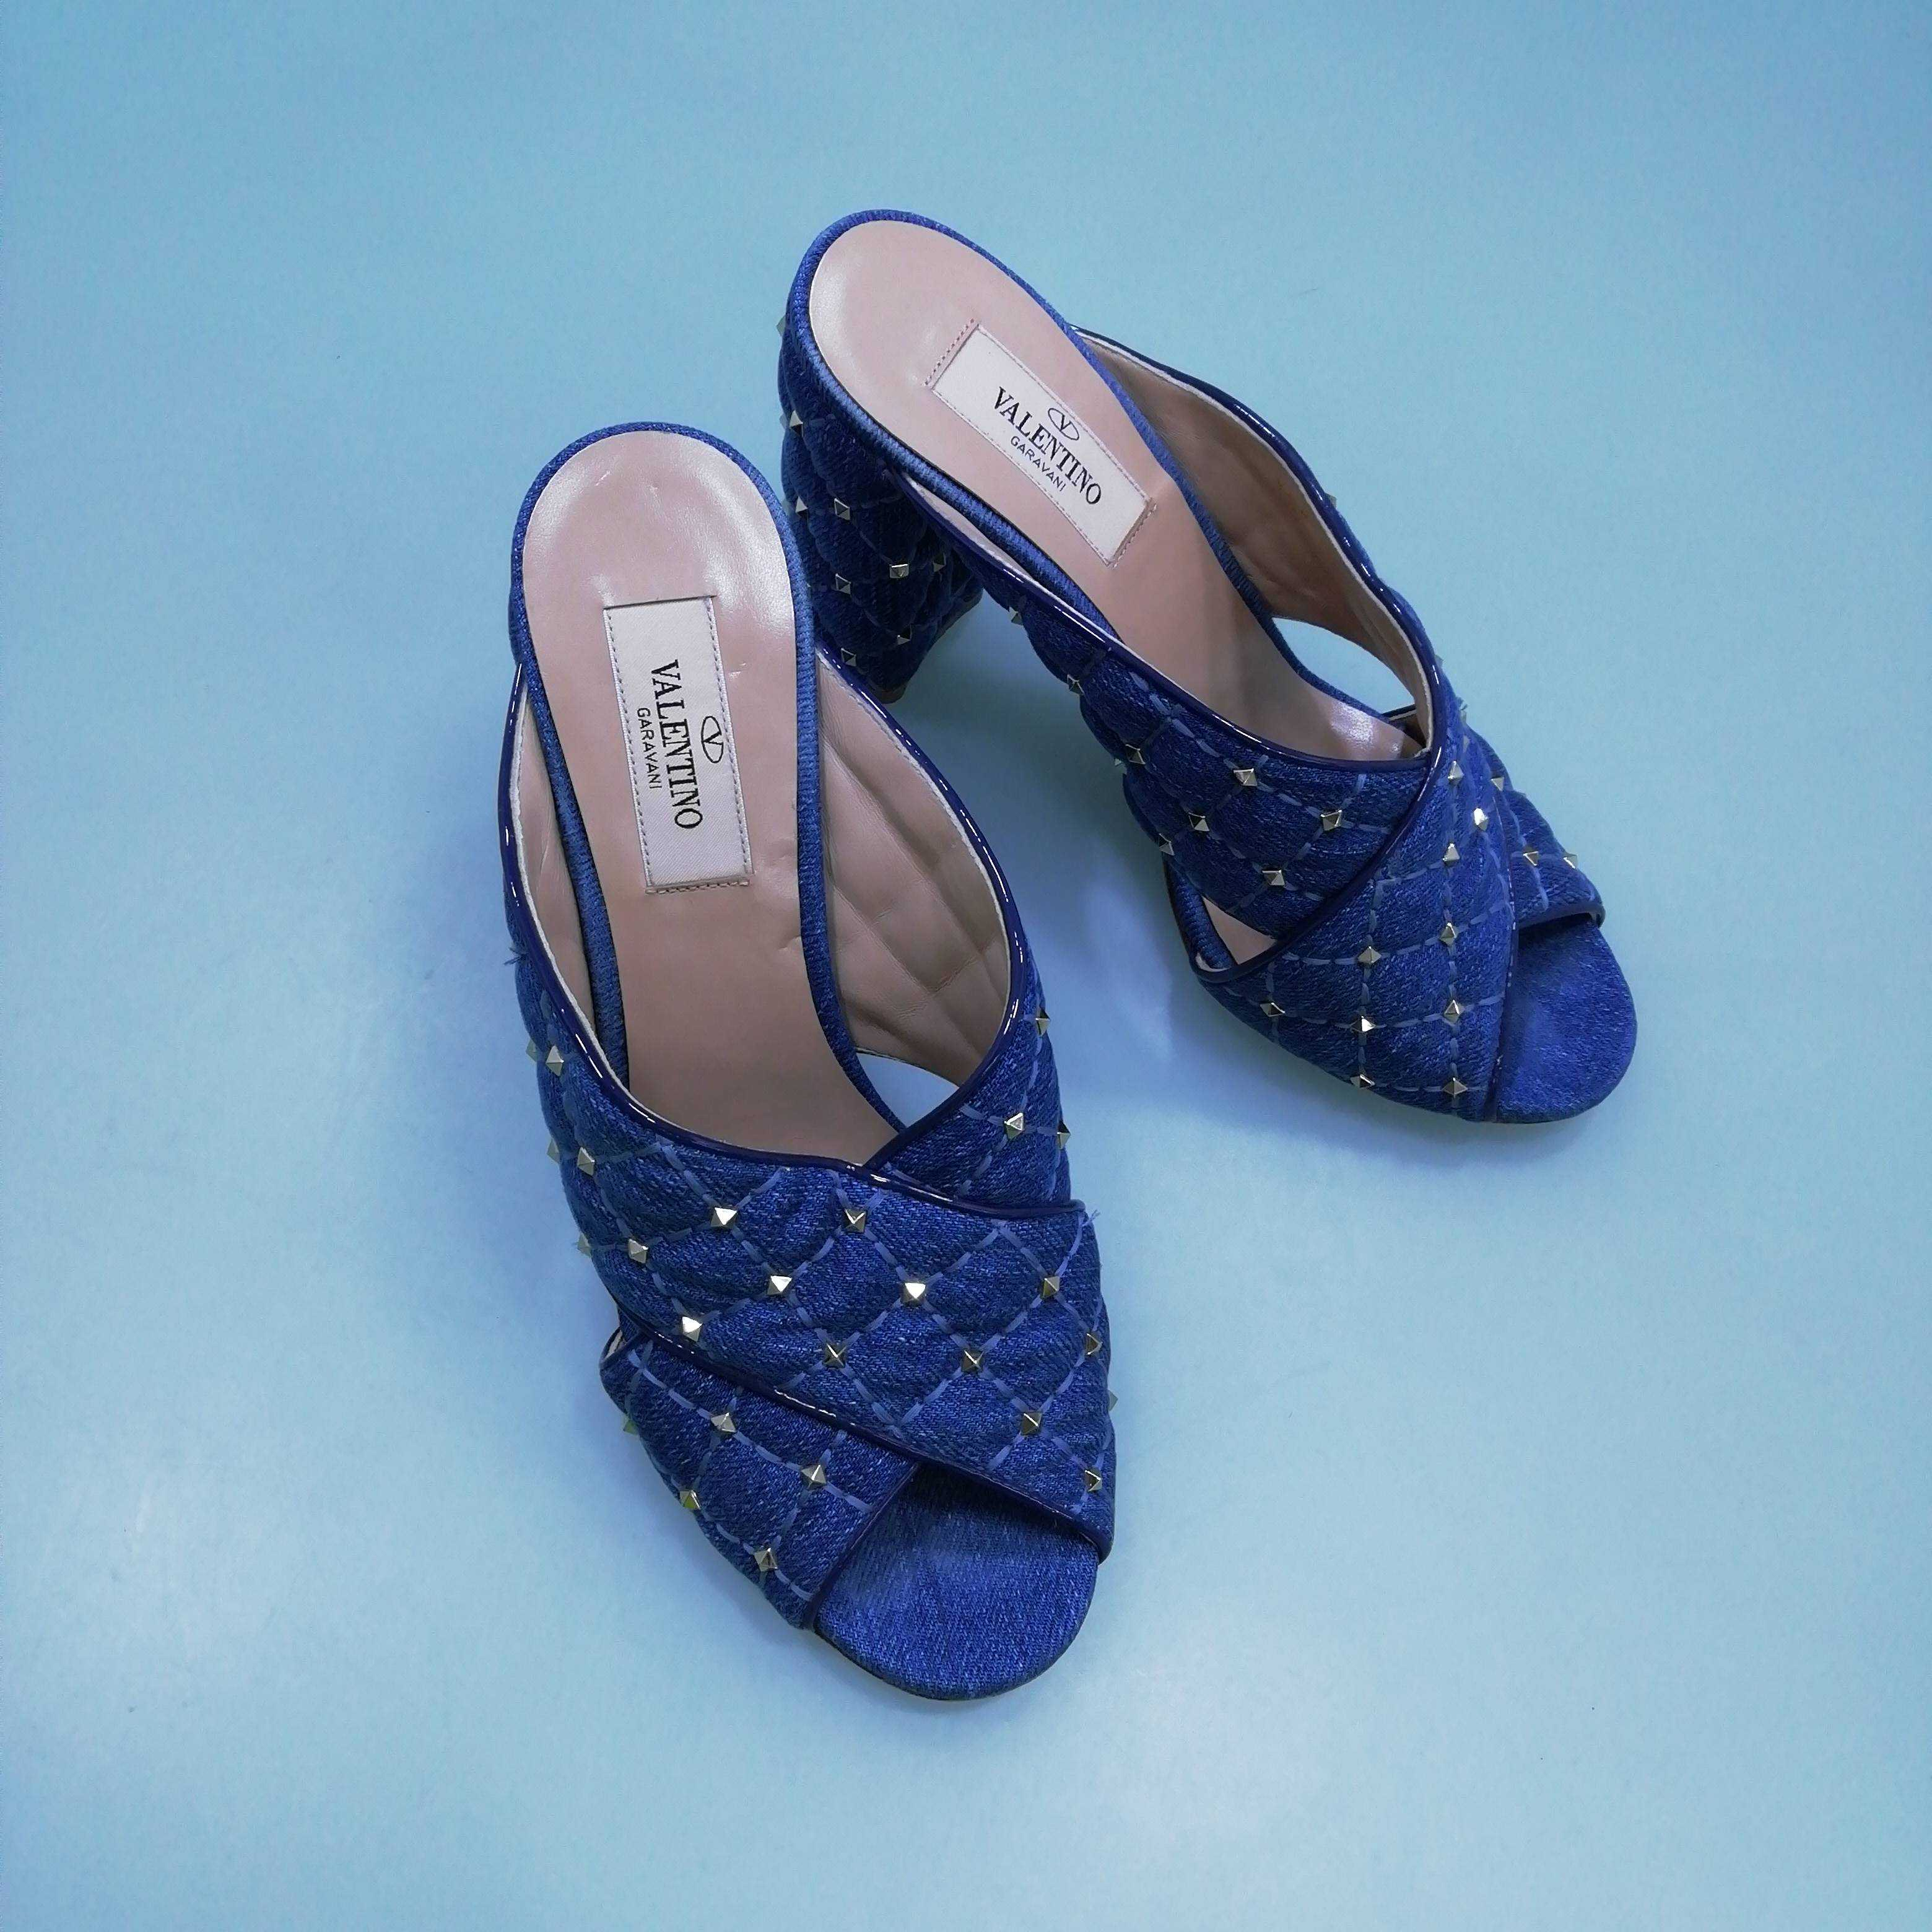 Valentino Women's Wedges 4 UK 4 Colour:  Blue